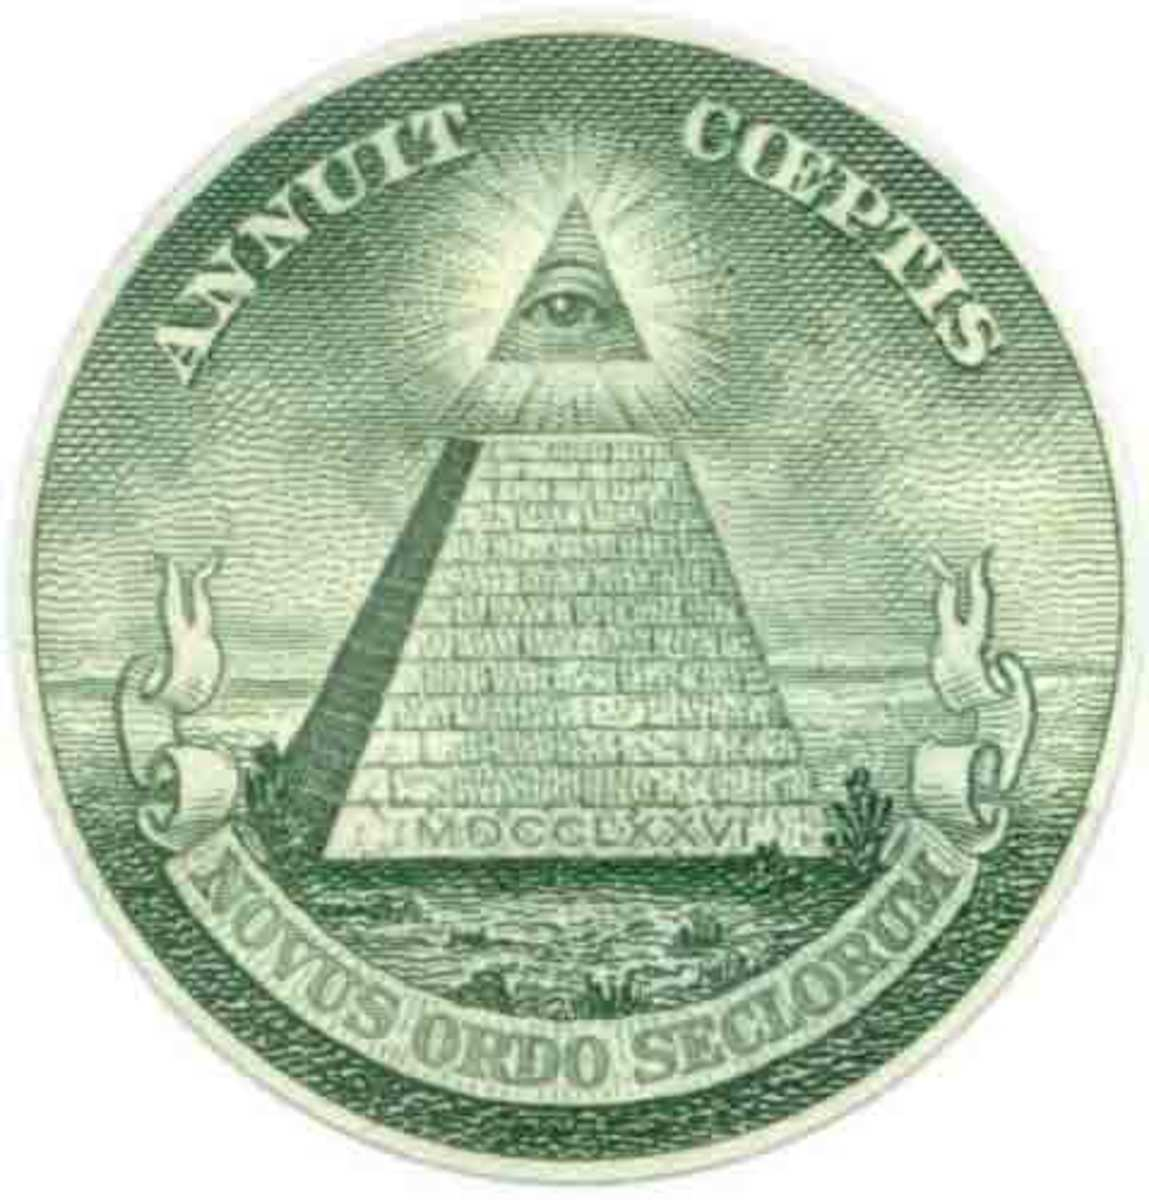 The all seeing eye, found here on the US dollar, is the supposed symbol of the Illuminati and several other secret societies.